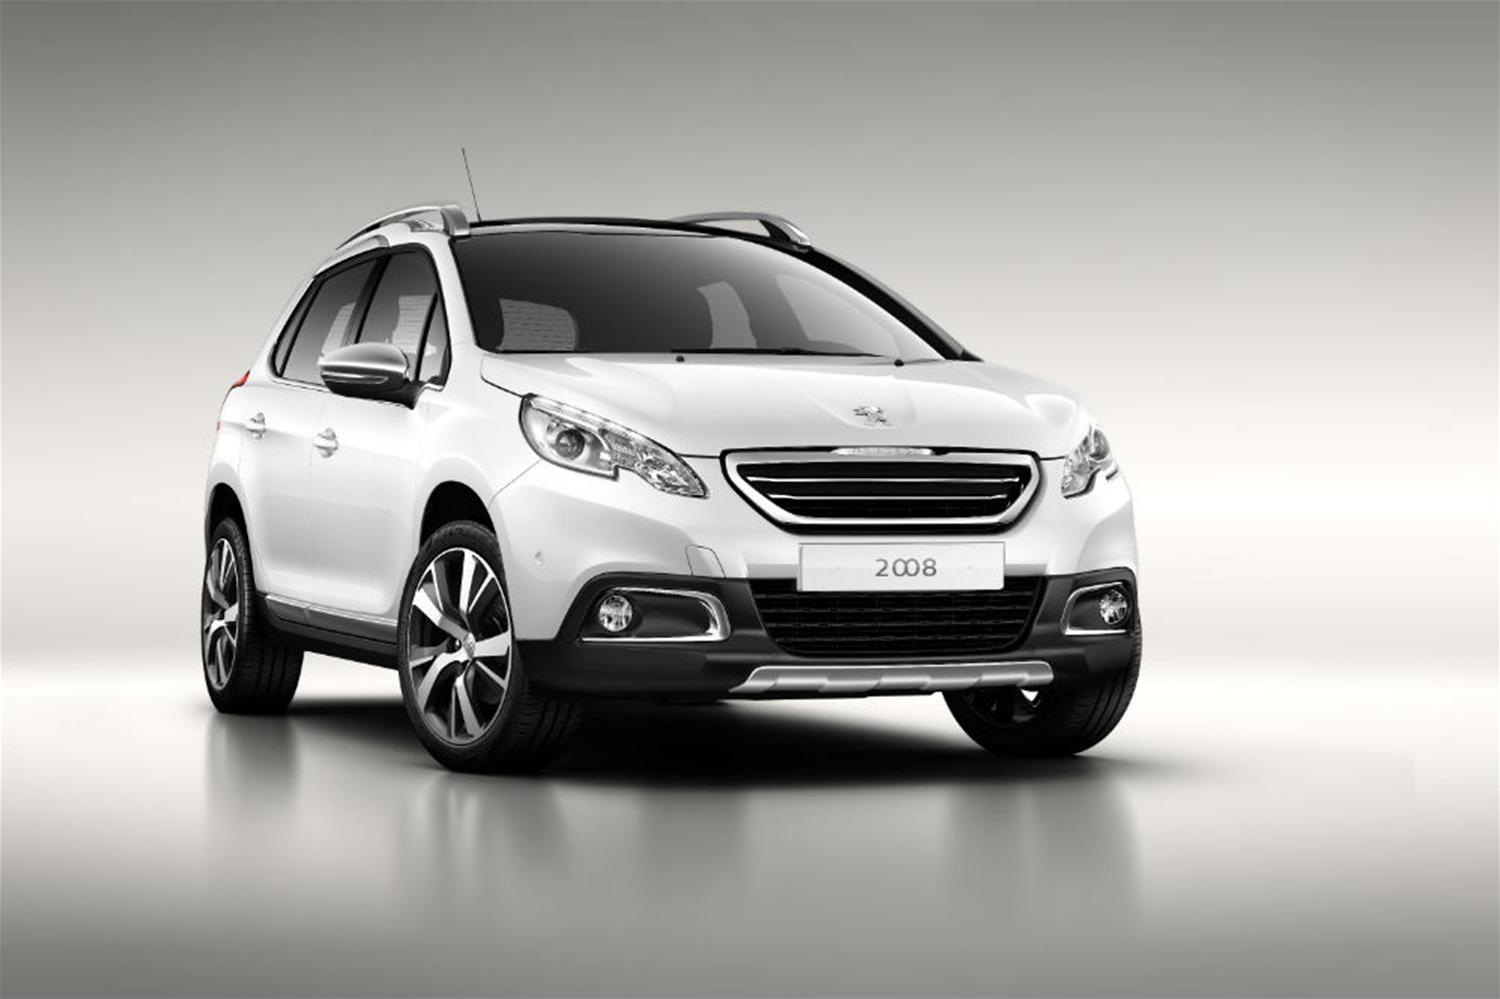 Prices announced for new Peugeot 2008 crossover